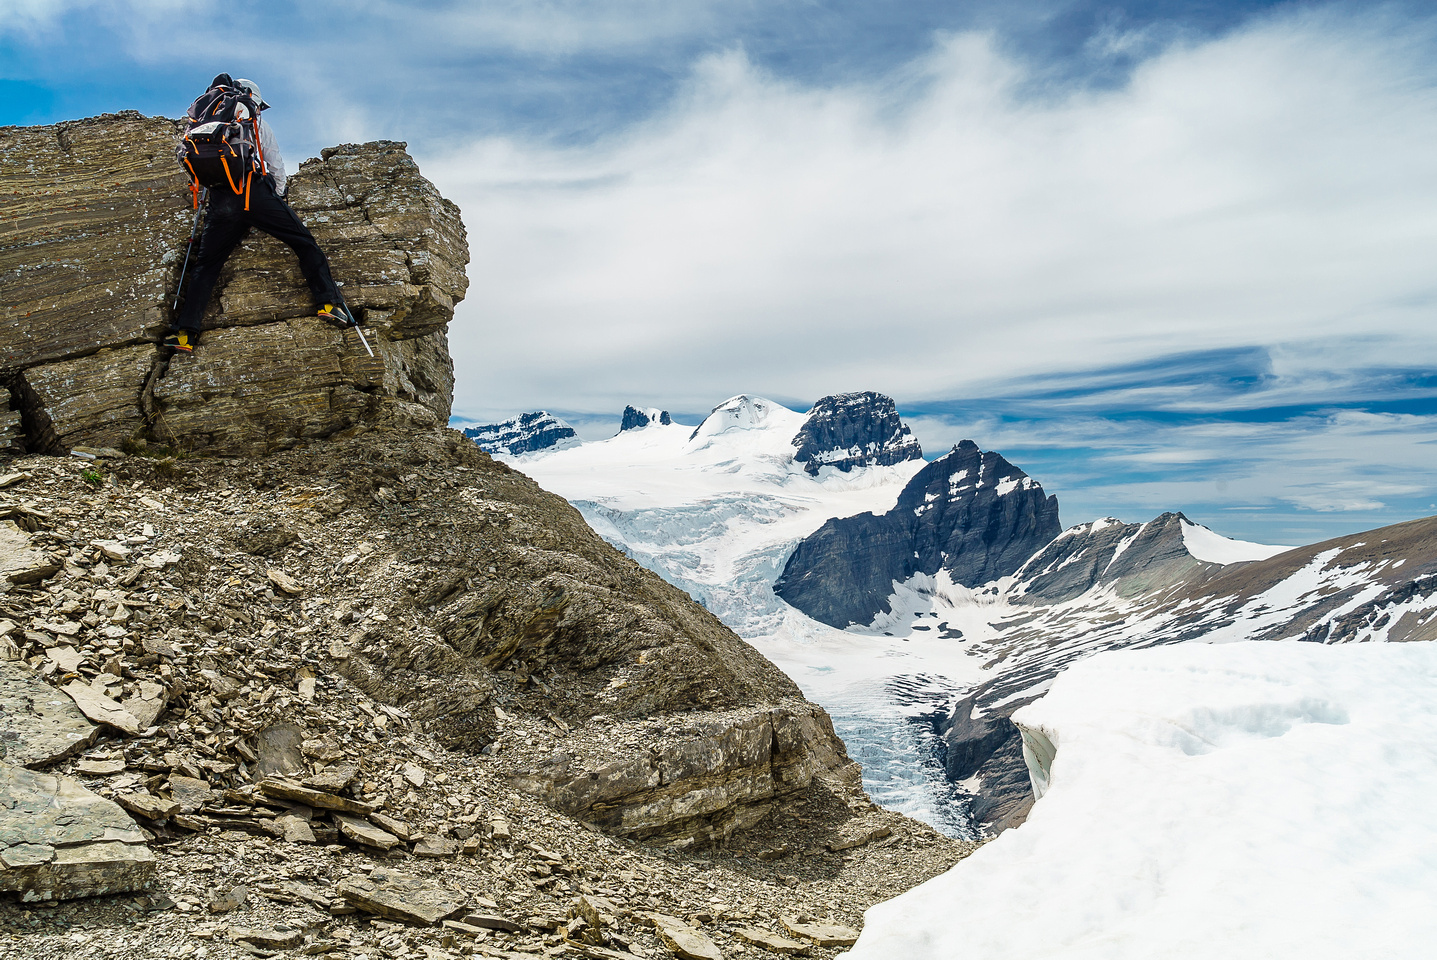 """Steven tackles """"the crux"""" on Arctomys' west ridge - a moderate low cliff band."""